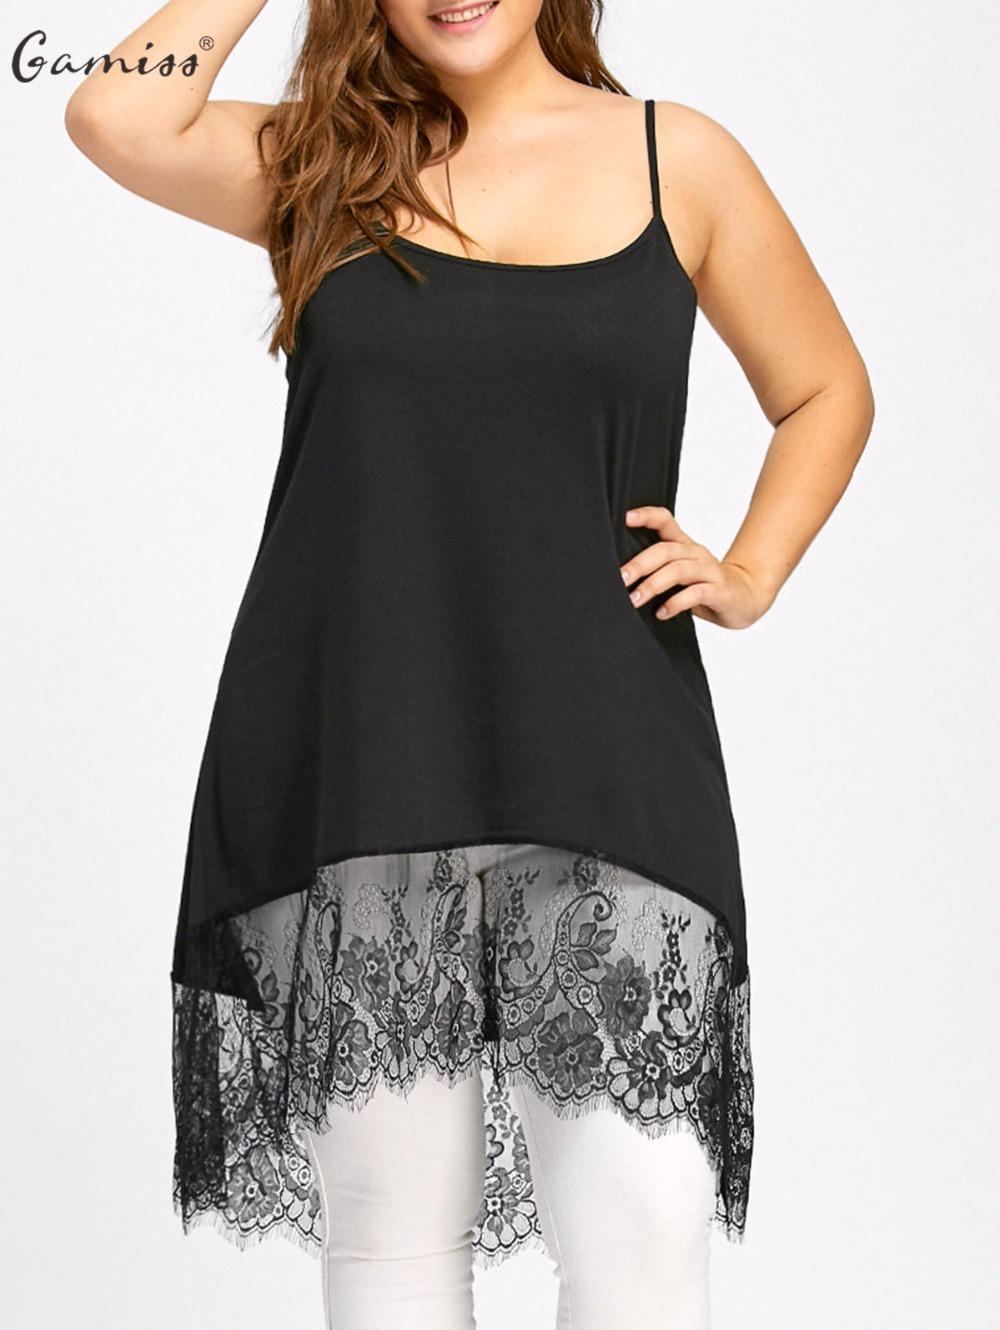 0815fdba35c Gamiss Women Long Tanks Plus Size High Low Lace Panel Camis Tank Top Sexy  Sleeveless Vest Female Casual Fashion Tops Tees